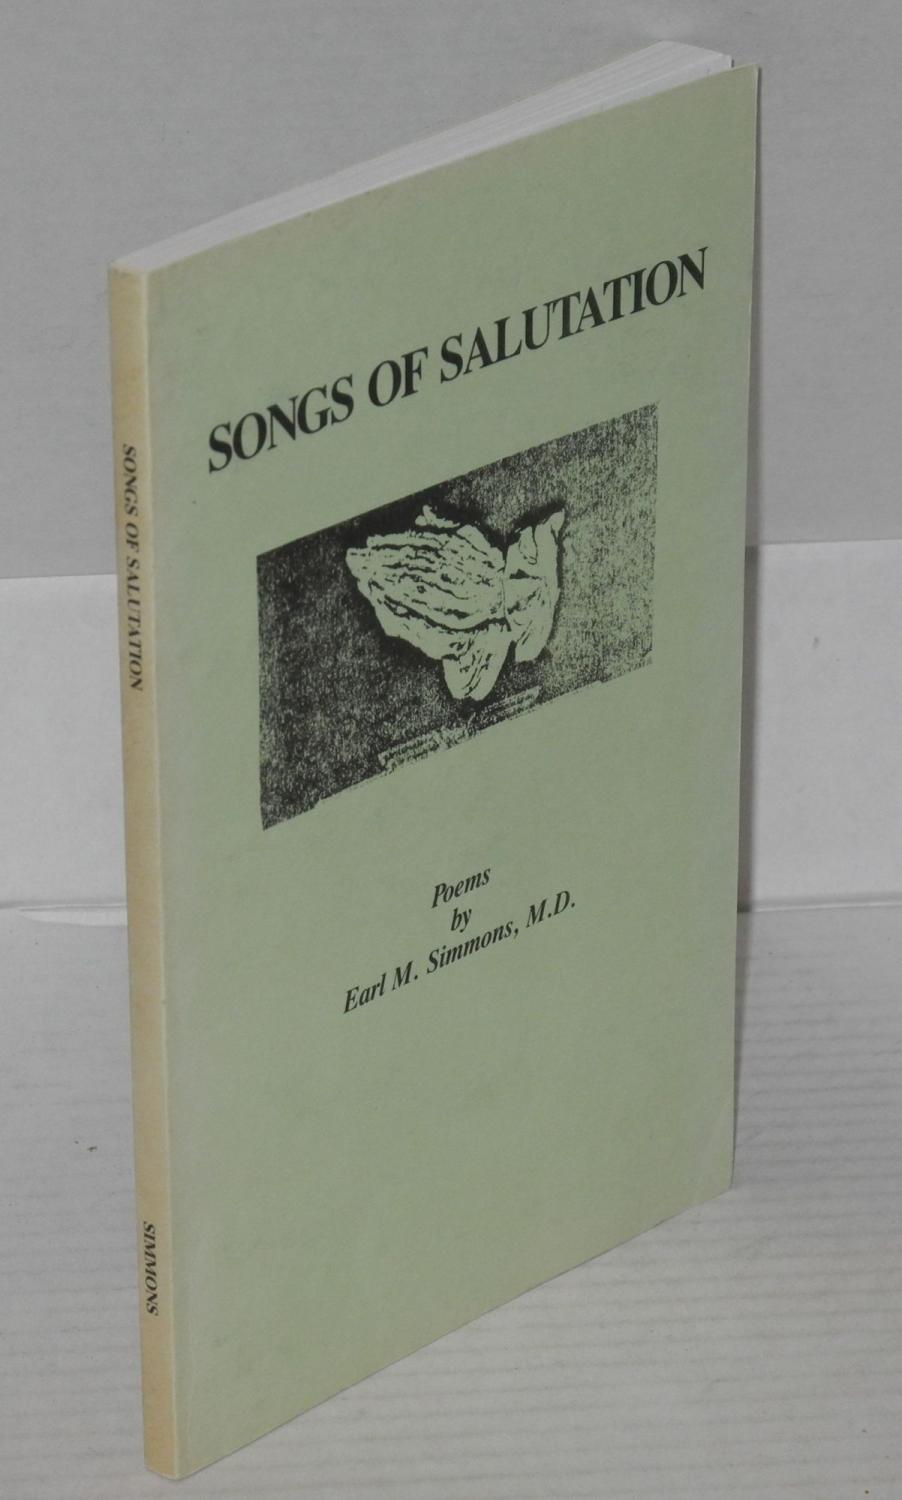 Songs of salutation, poems: Simmons, Earl M.